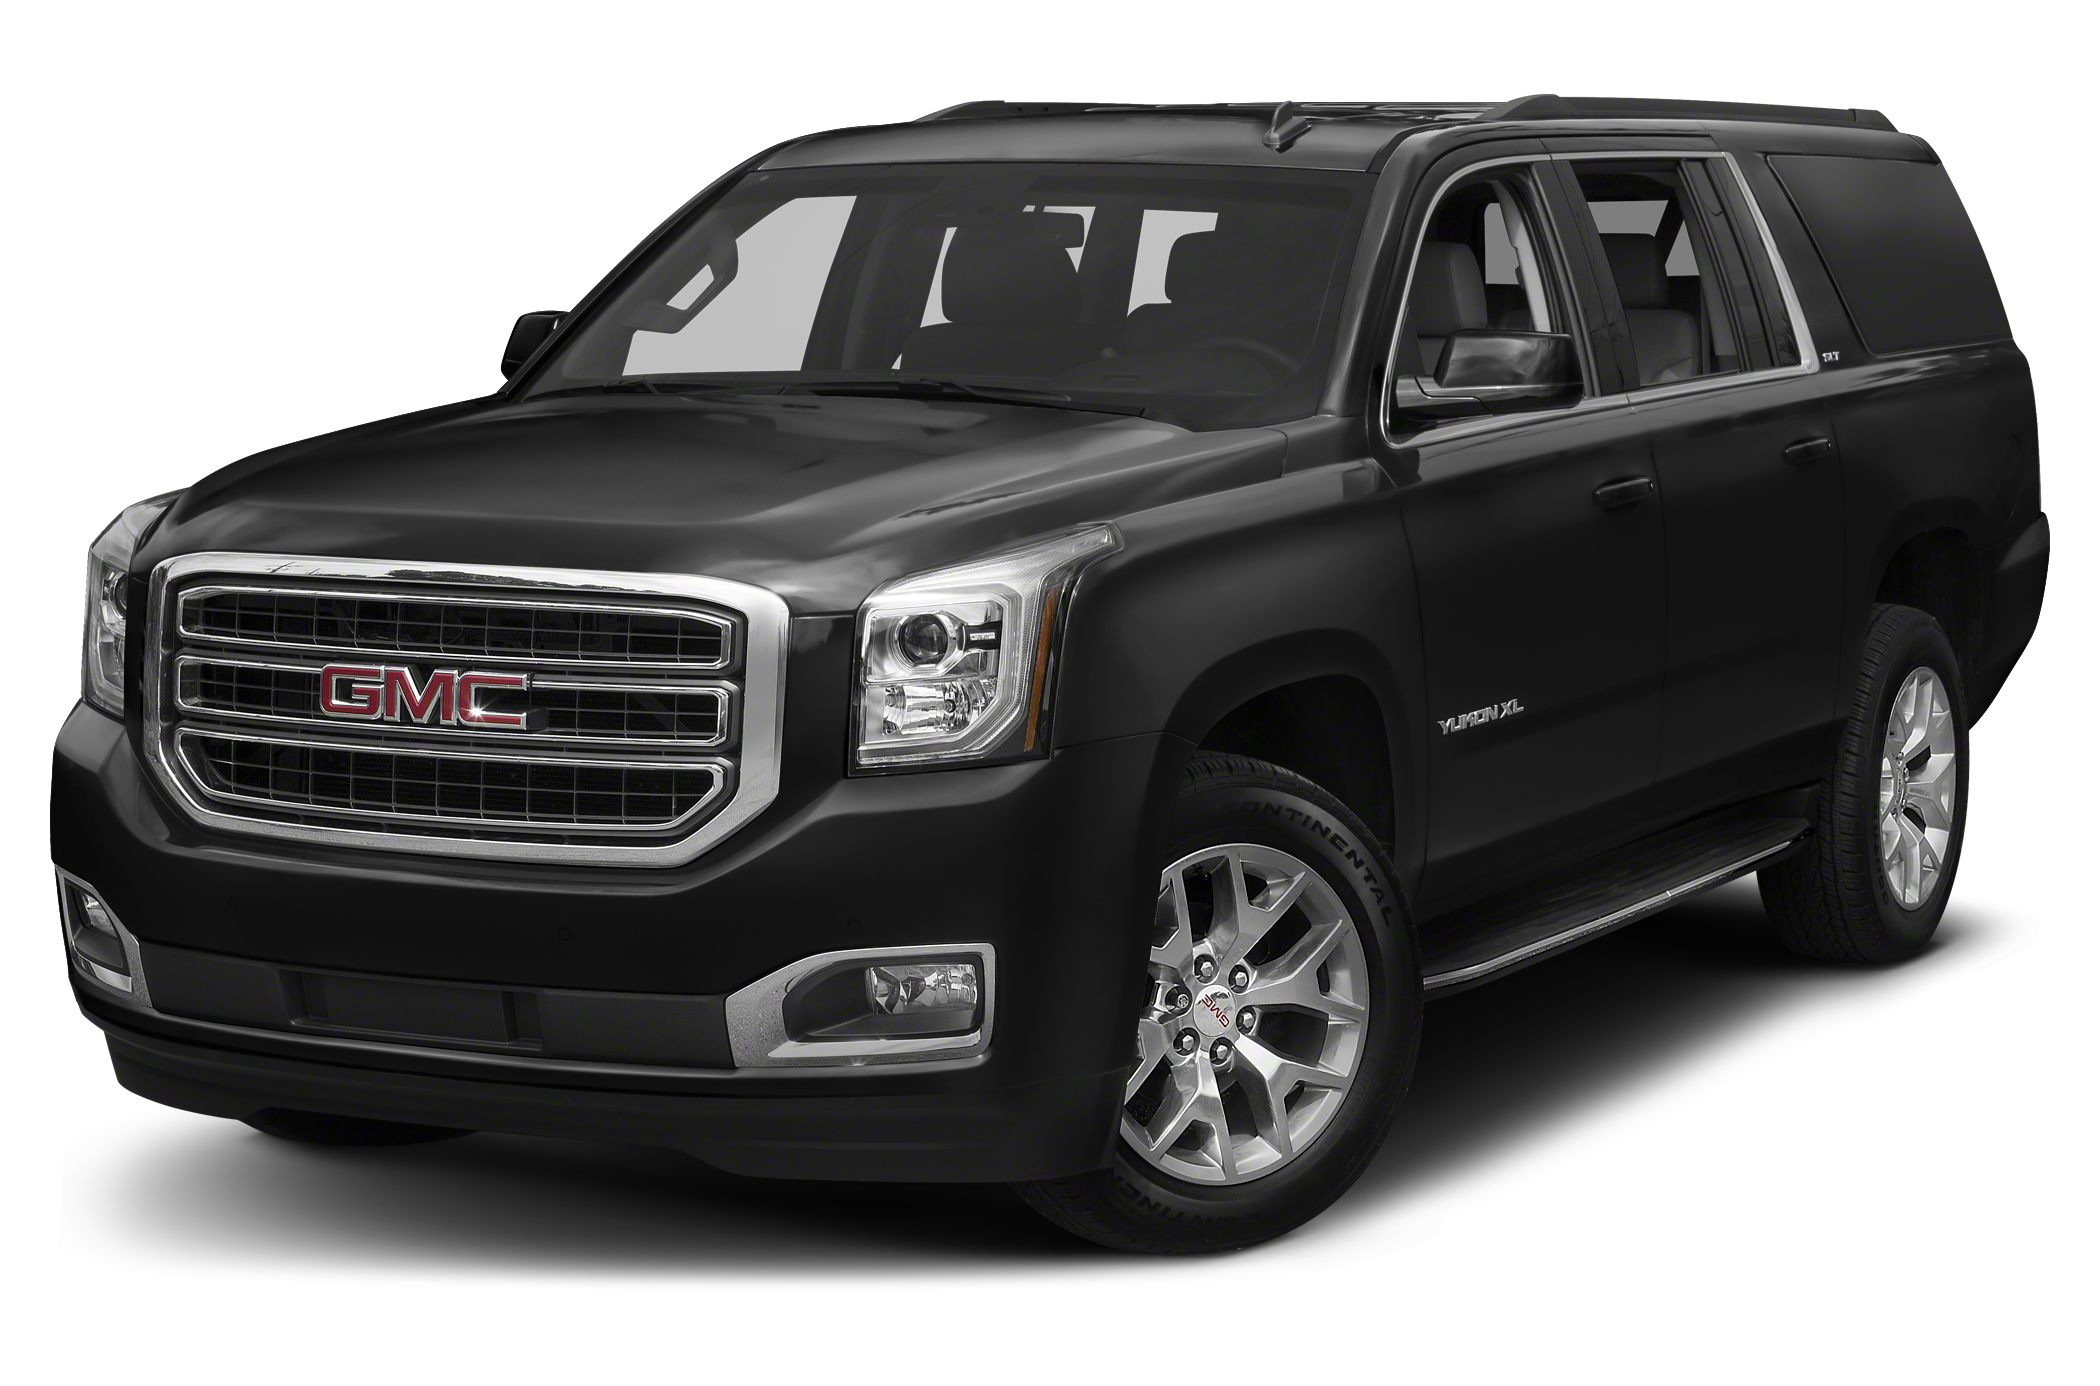 2016 GMC Yukon XL SLT Happiness comes first with this 2016 GMC Yukon XL SLT 1500 Enjoy first-rate